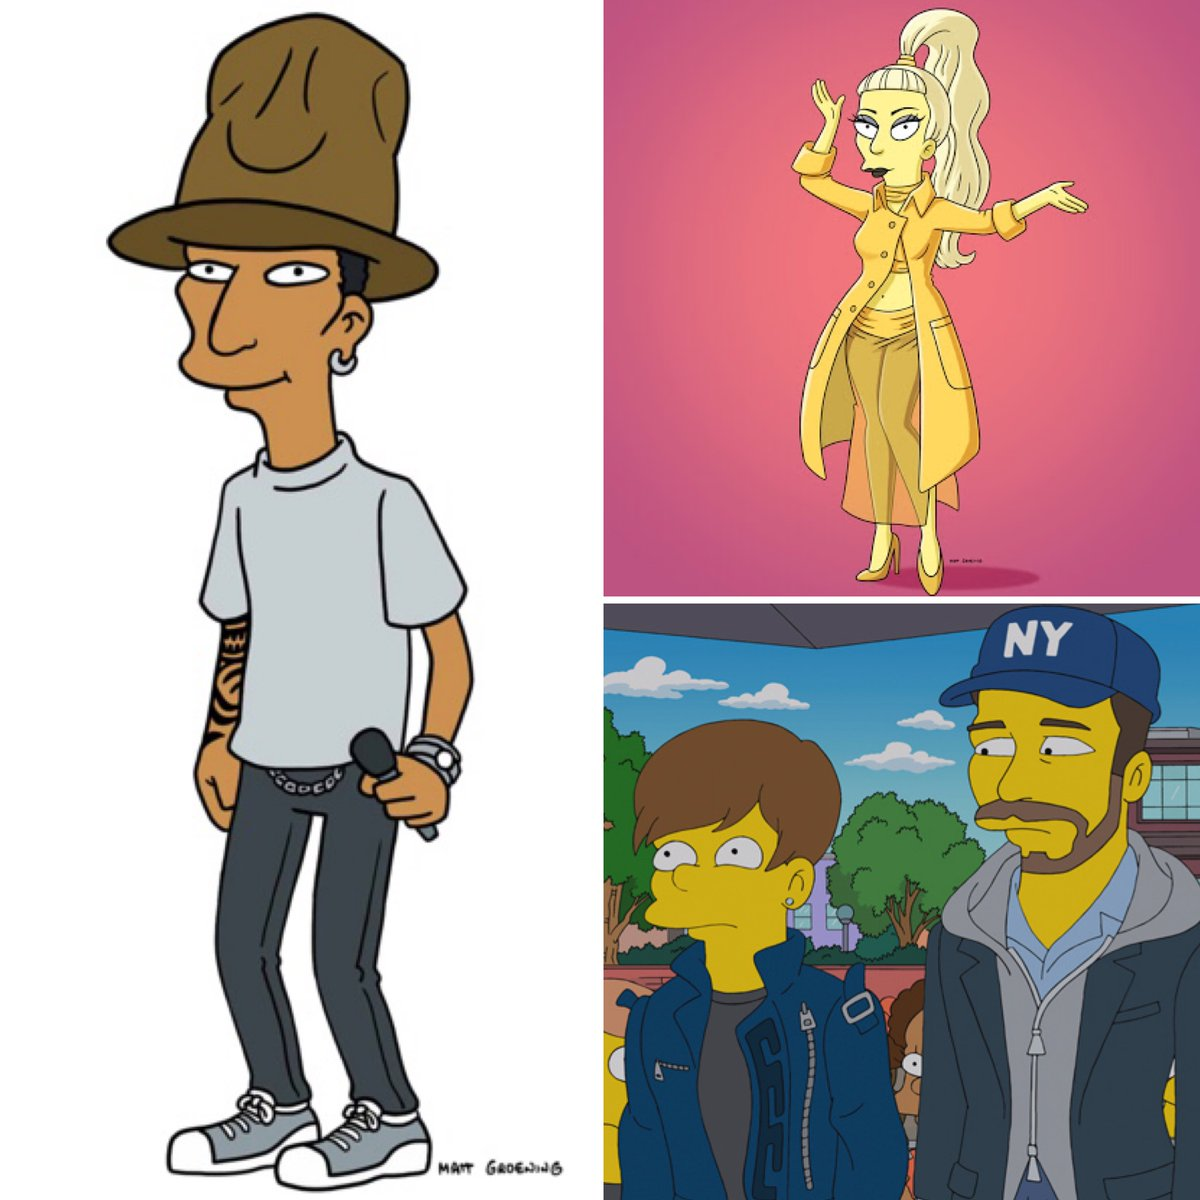 🎶 Your faves get animated as our marathon of #TheSimpsons best music cameos wraps up TONIGHT at 9E/6P with appearances by @Pharrell, @ladygaga, @justinbieber are more!